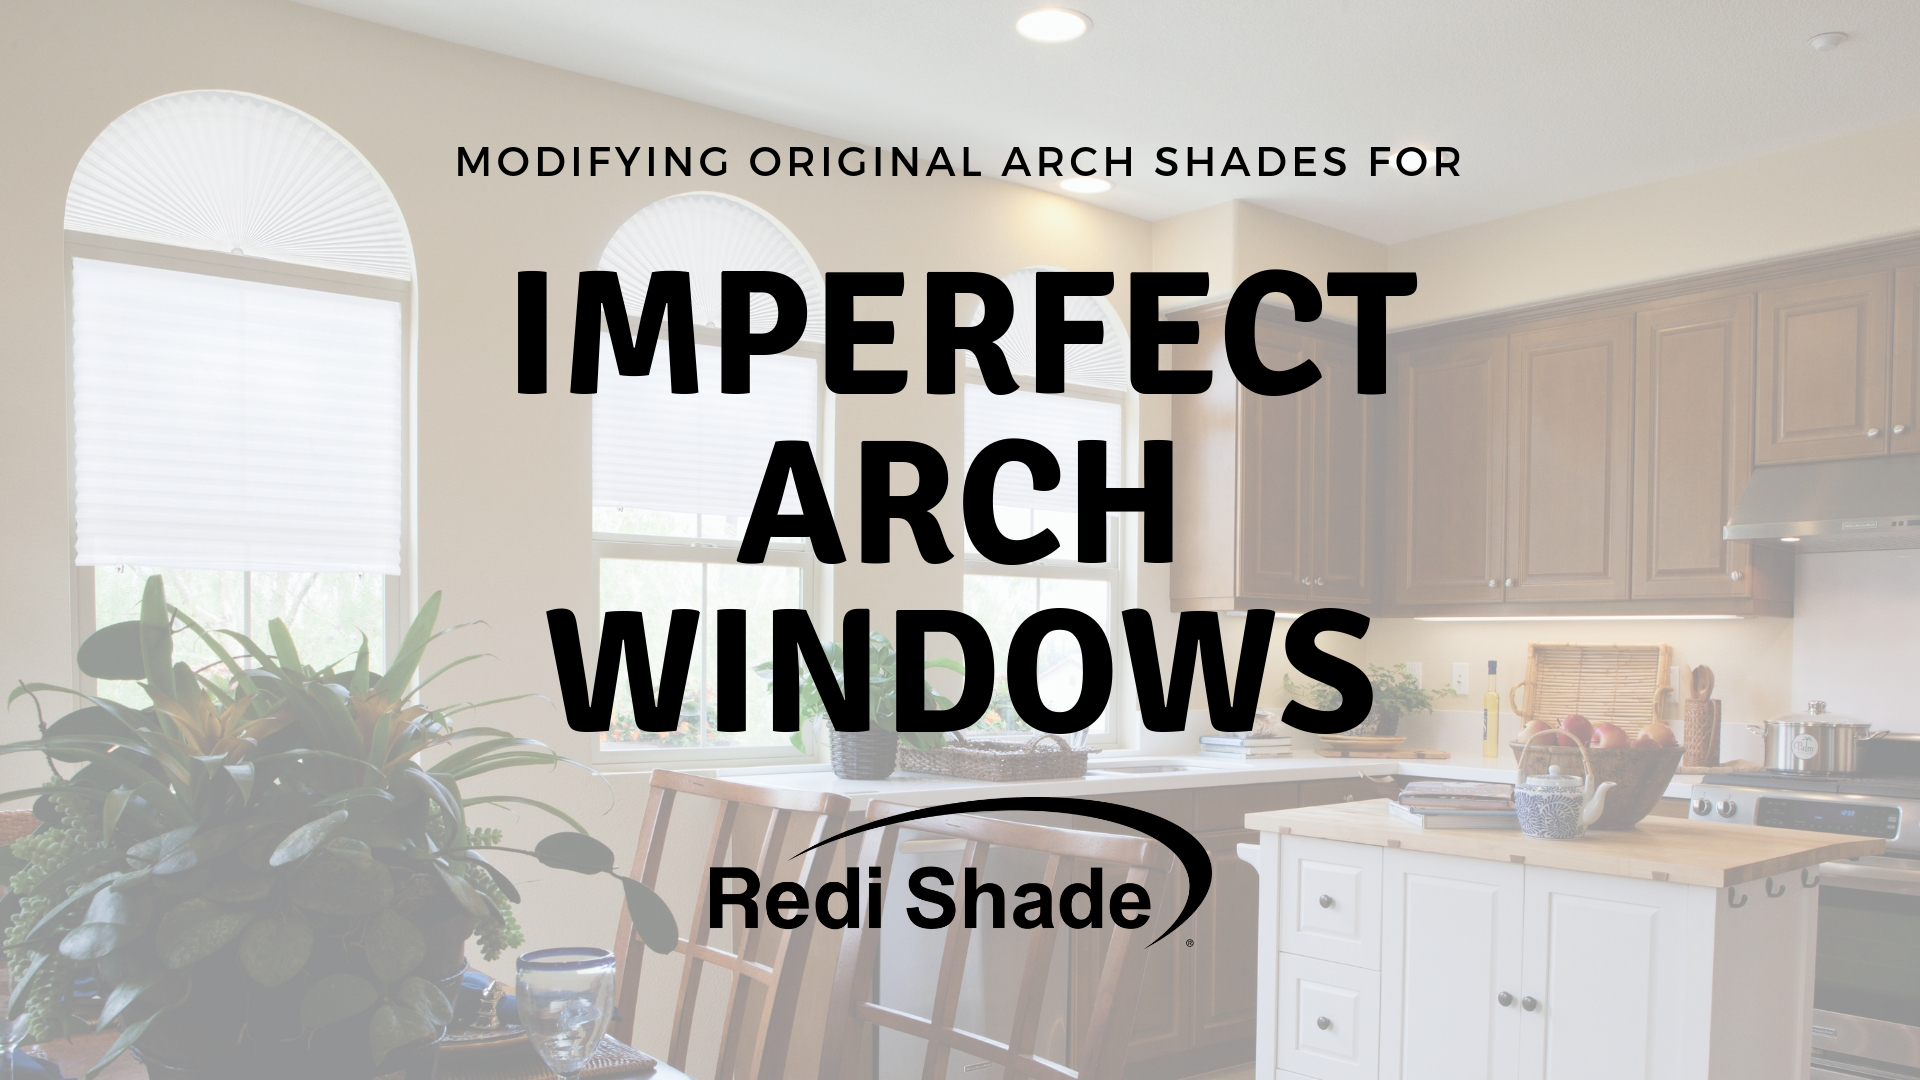 How To Modify A Shade For An Imperfect Arch Made In The Shade